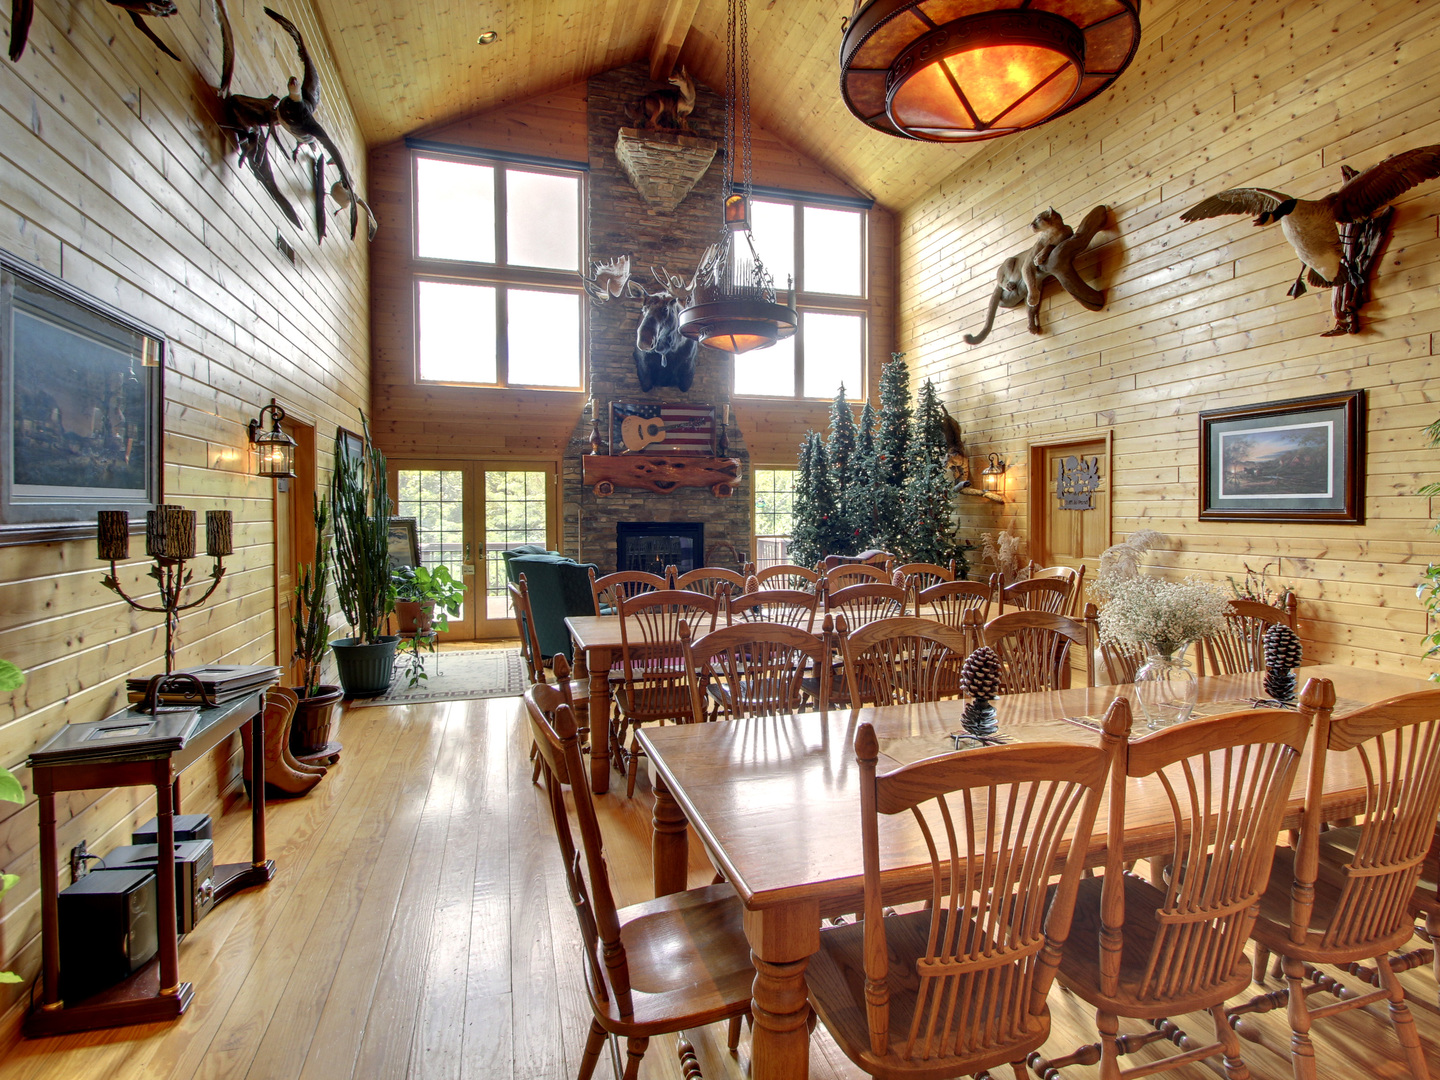 A living room filled with furniture and a fire place at Harpole's Heartland Lodge.